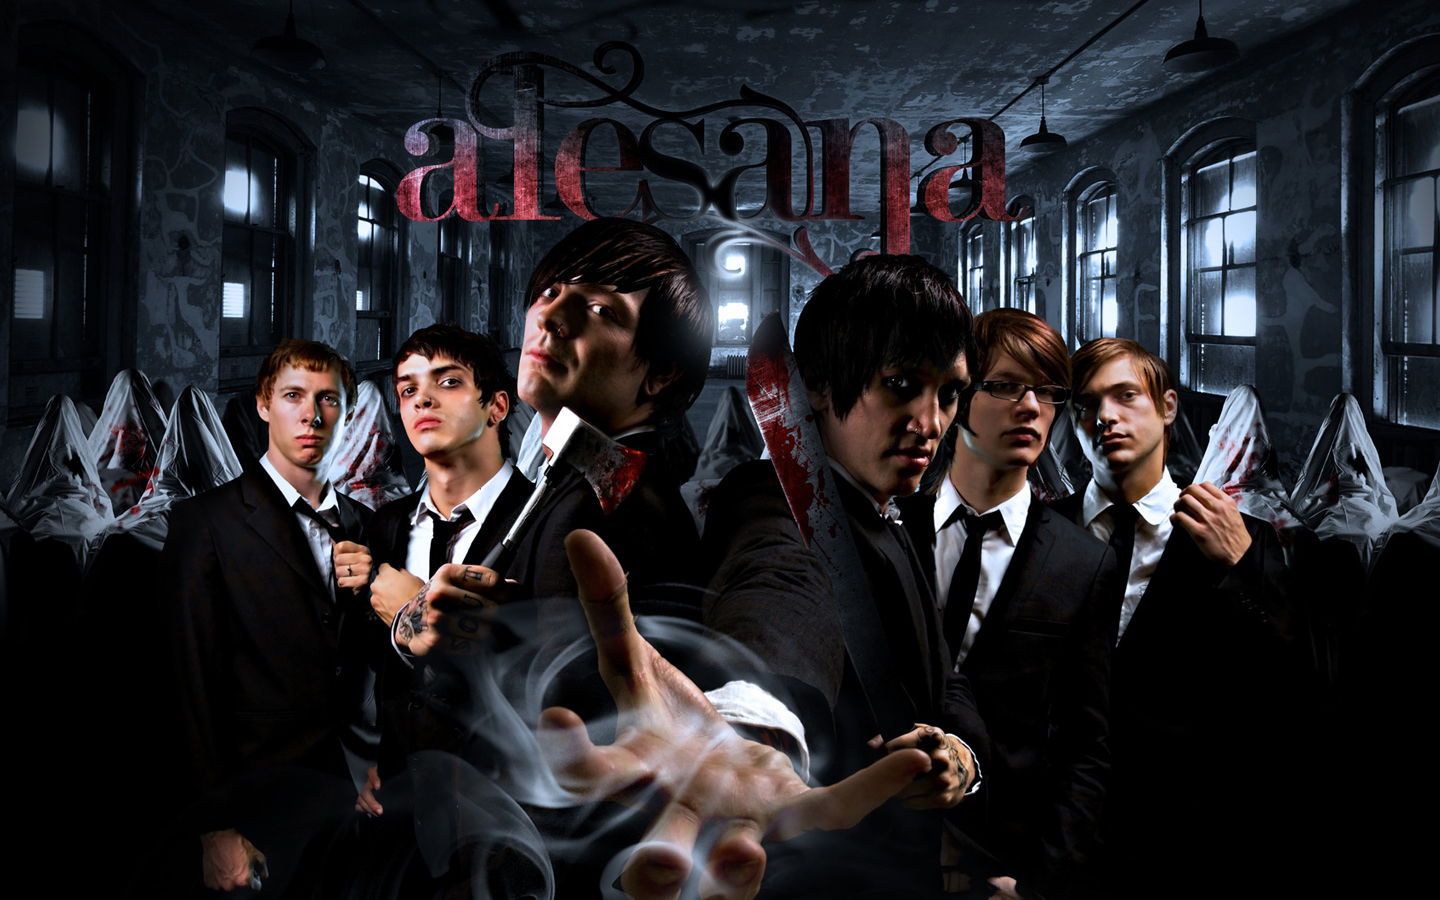 screamo bands wallpaper - photo #13